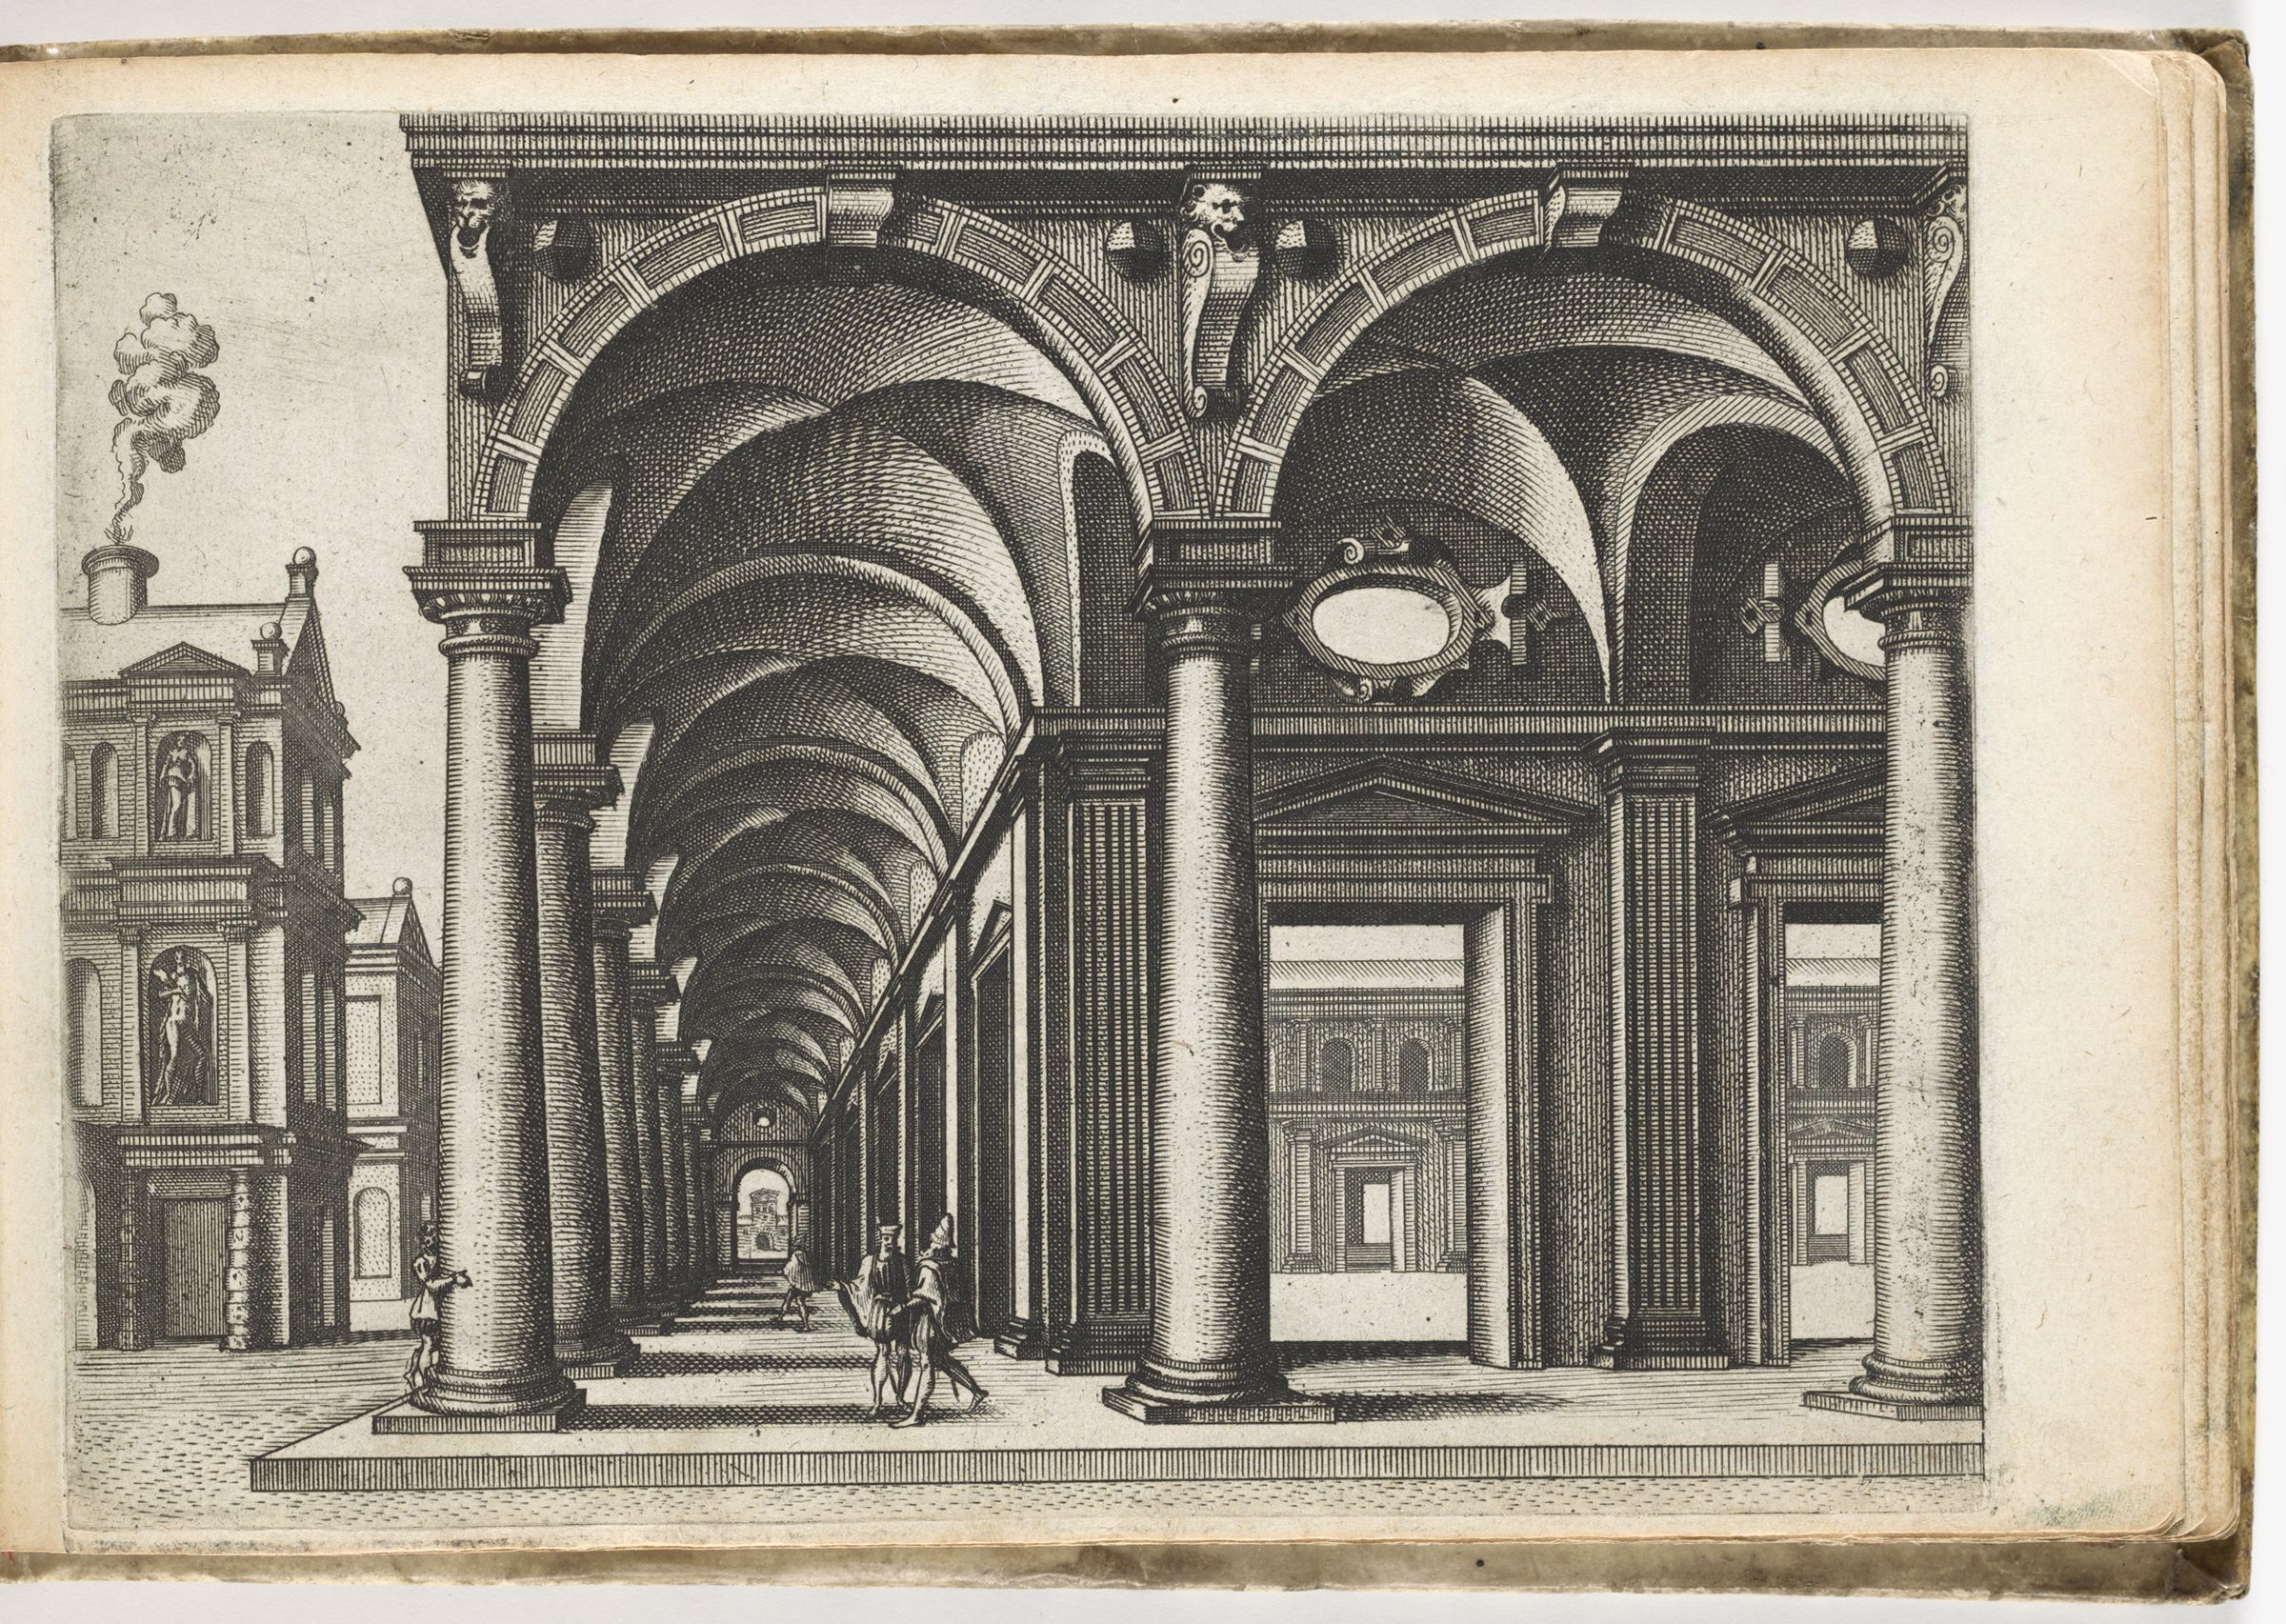 Colonnade With Columns Of The Tuscan Order Surrounding A Courtyard, On The Left A Two Storey Townhouse